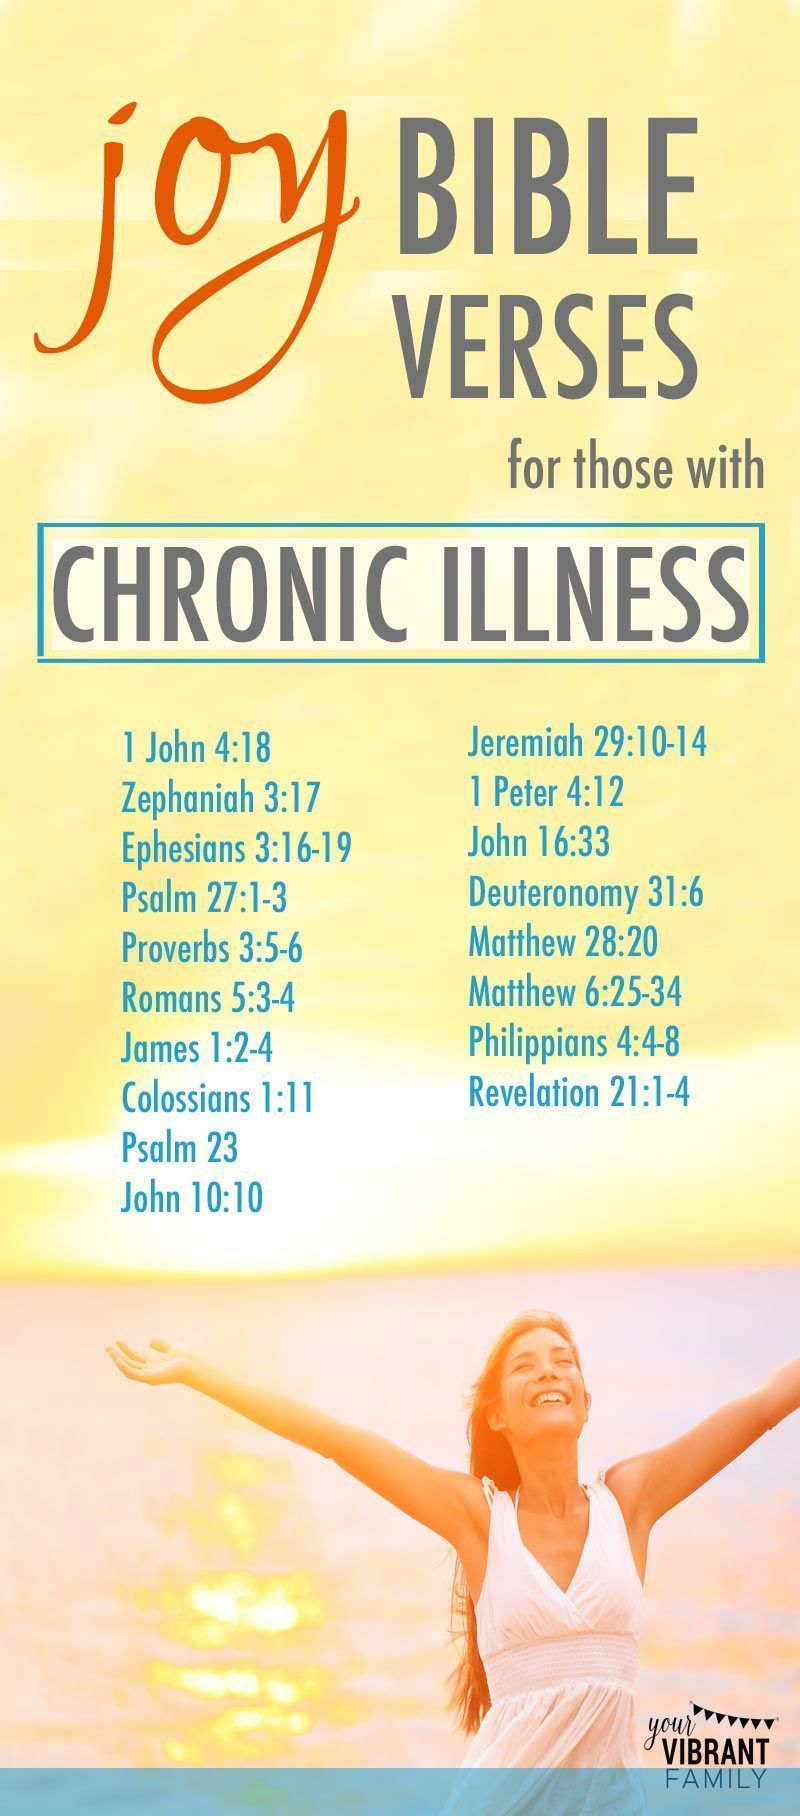 Supreme Do You Suffer From Chronic Illness Need To Discover Lasting A Chronic Illness Sufferer Yourself Perhaps Your Husbandor Child Do You Suffer From Chronic Illness Need To Discover Lasting Joy inspiration Verses About Joy